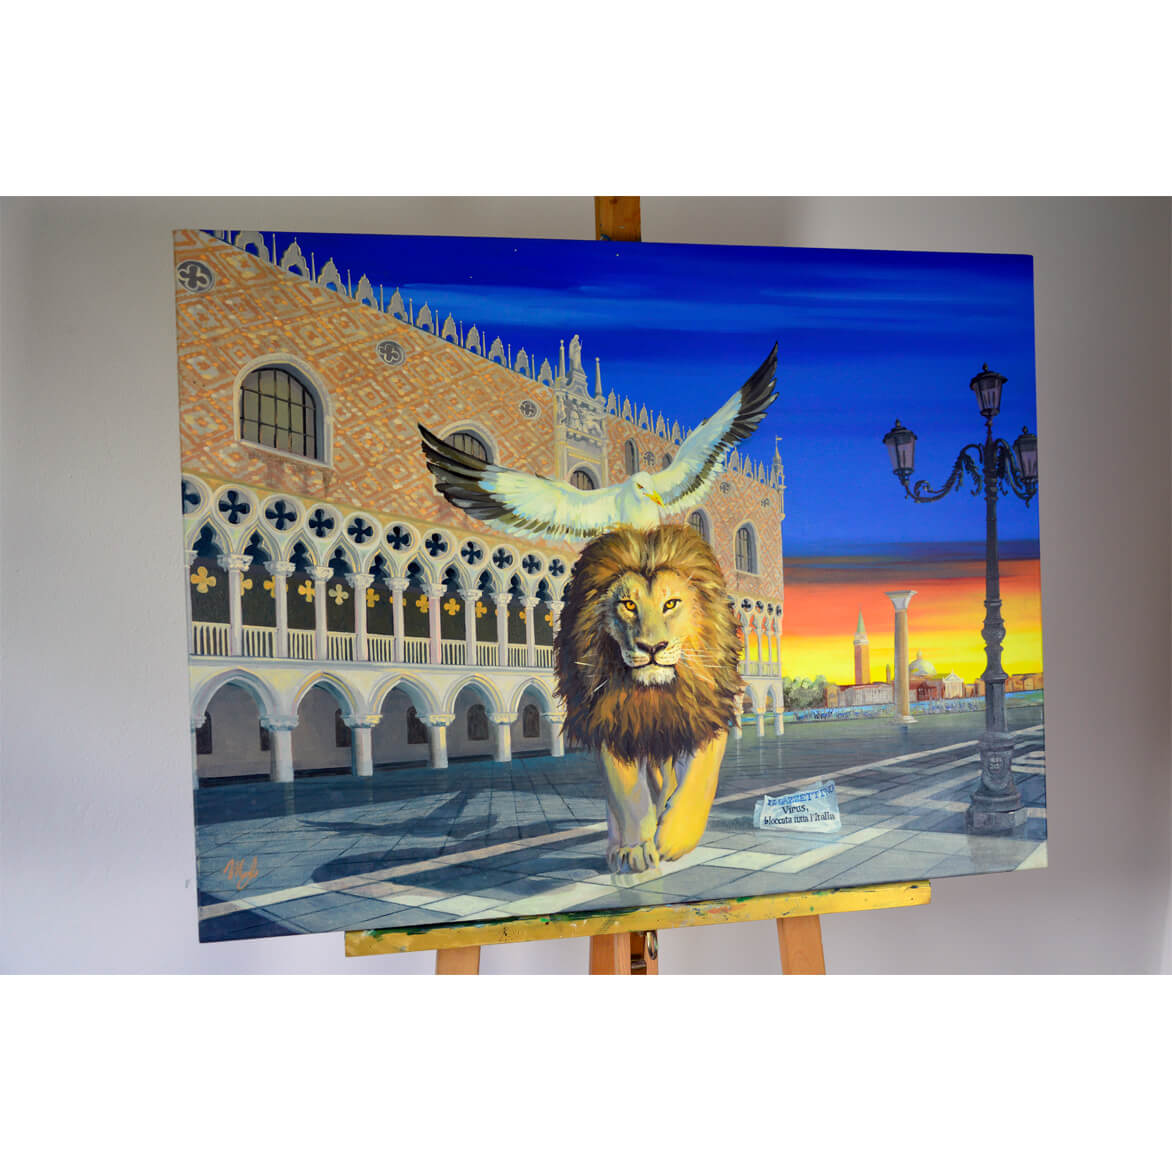 Panting wiht lion of Venice with Doge's Palace